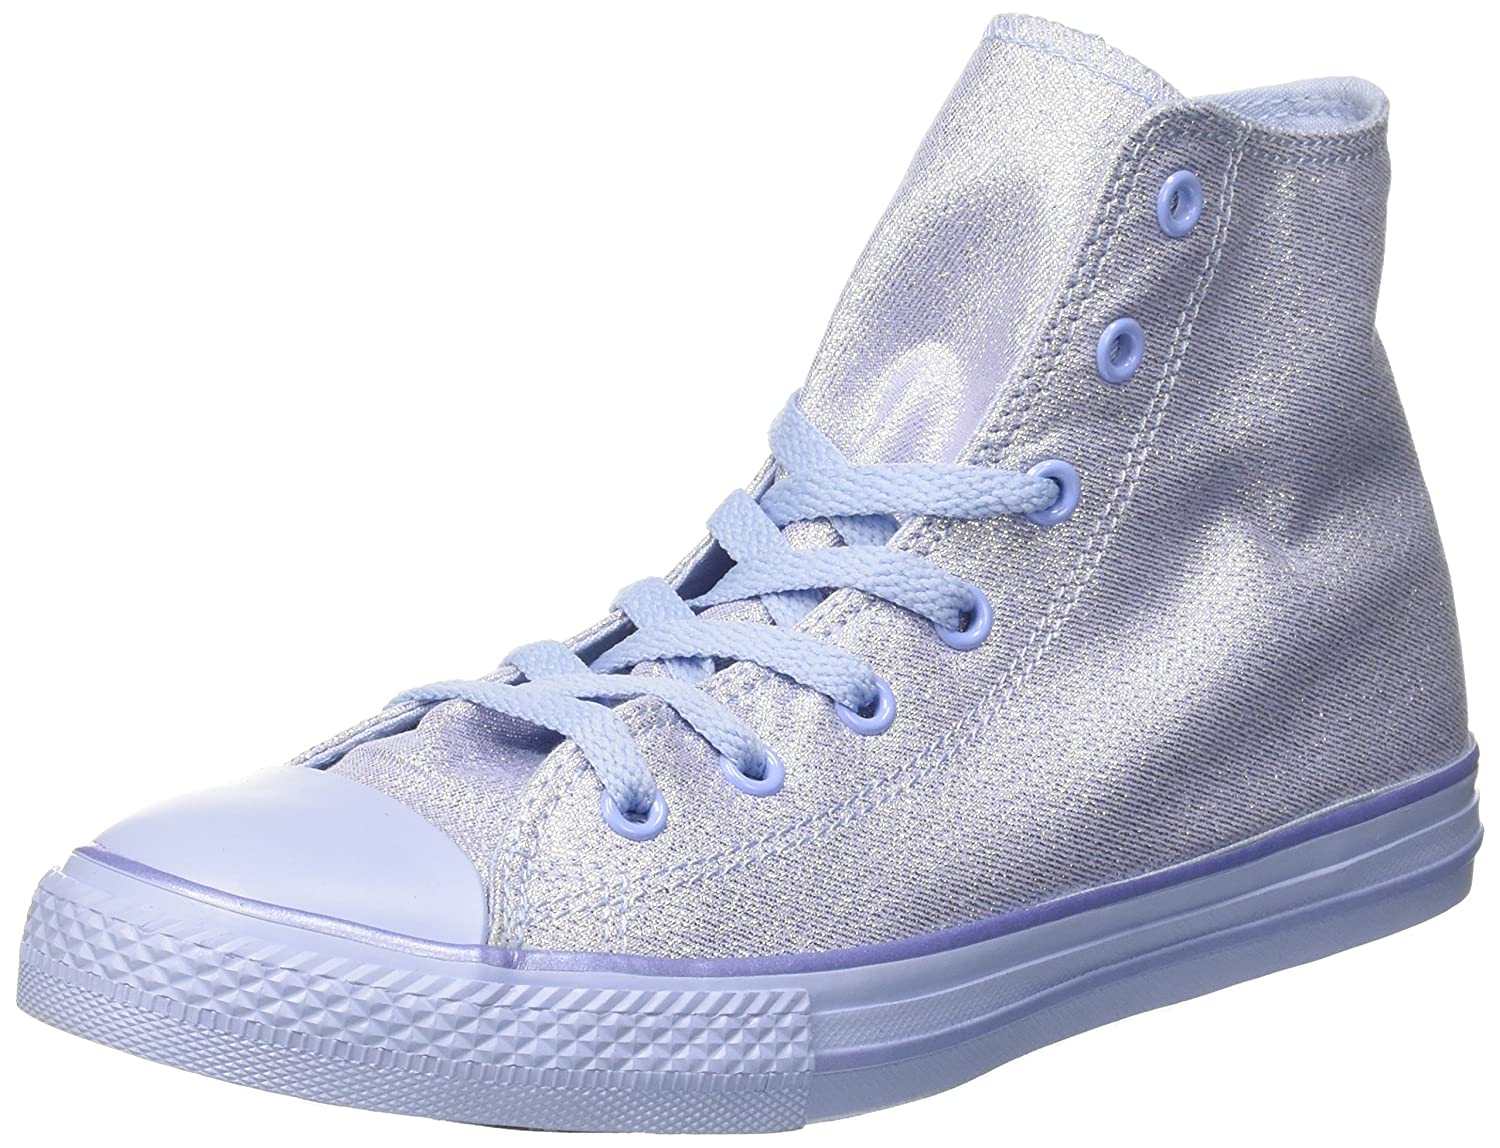 f4b7bbf7490 Converse Kids  Chuck Taylor CTAS Hi Cotton Fitness Shoes  Amazon.co.uk   Shoes   Bags